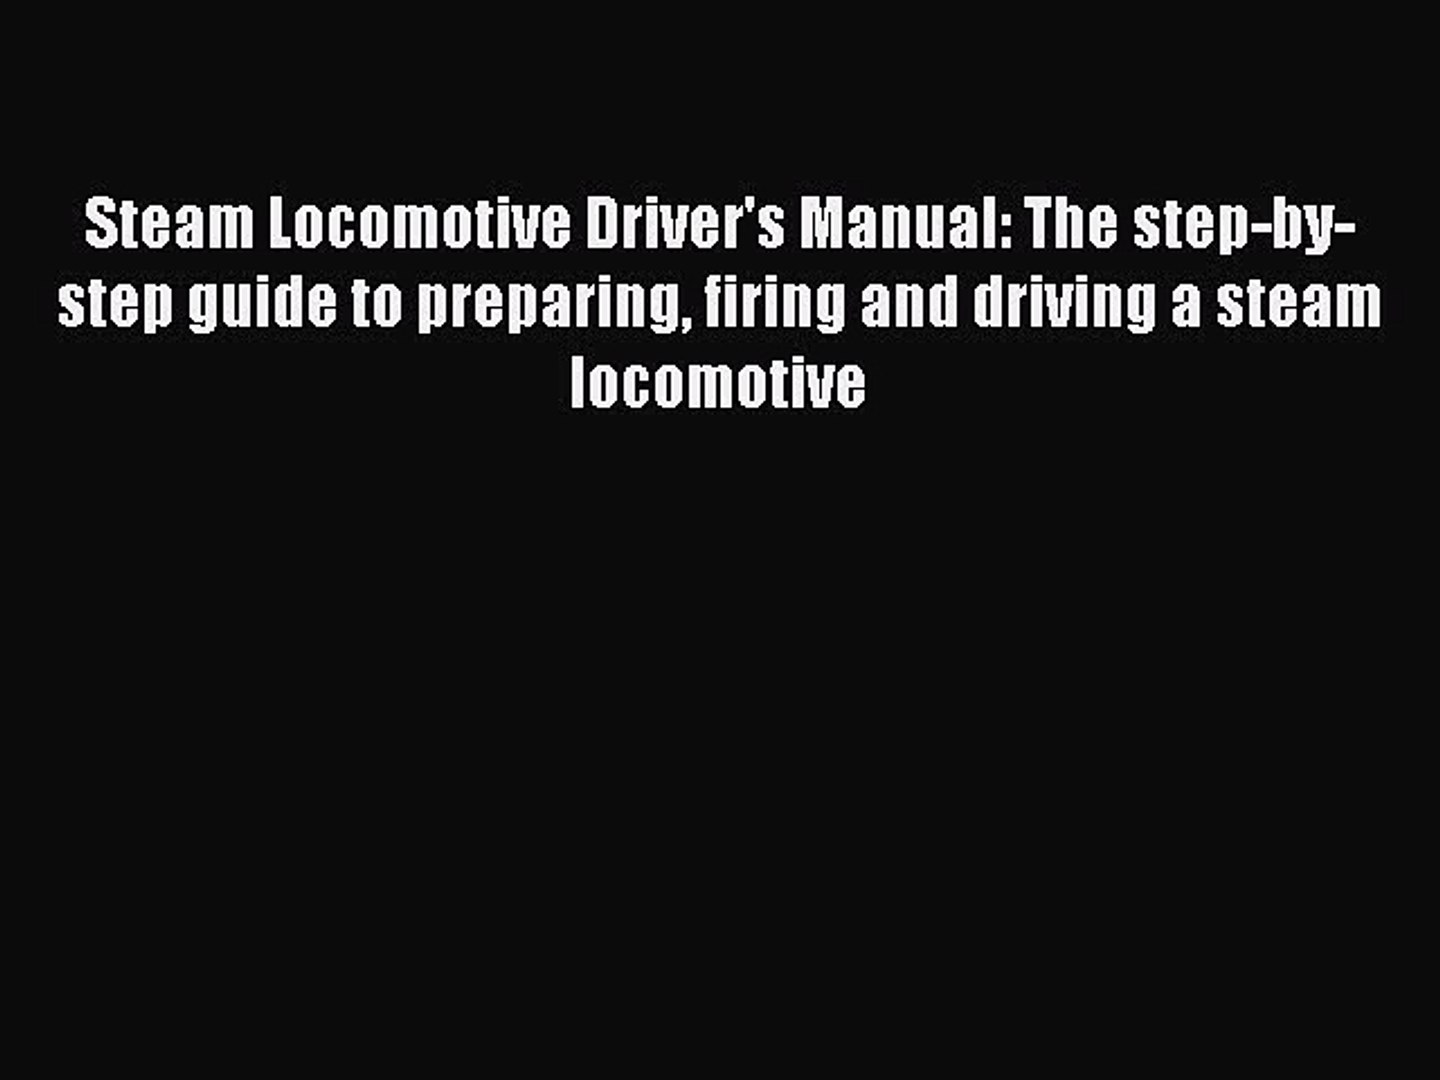 The step-by-step guide to preparing firing and driving a steam locomotive Steam Locomotive Drivers Manual